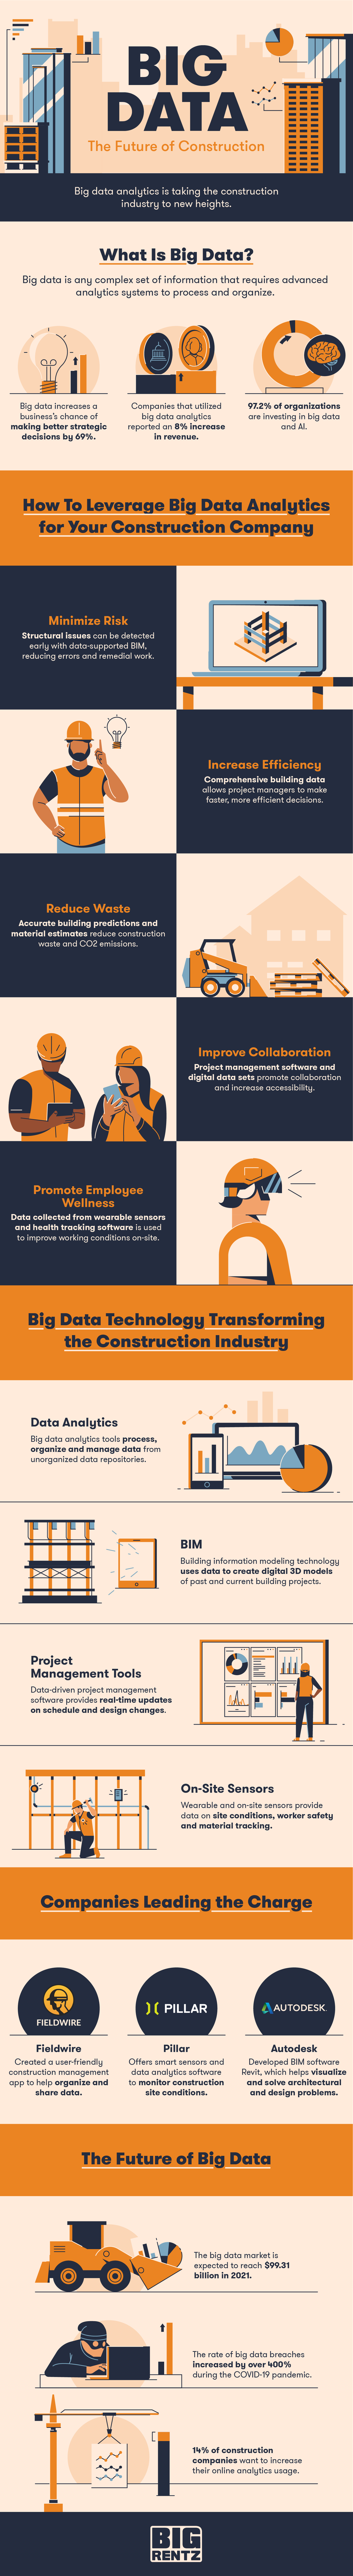 Big Data in Construction infographic